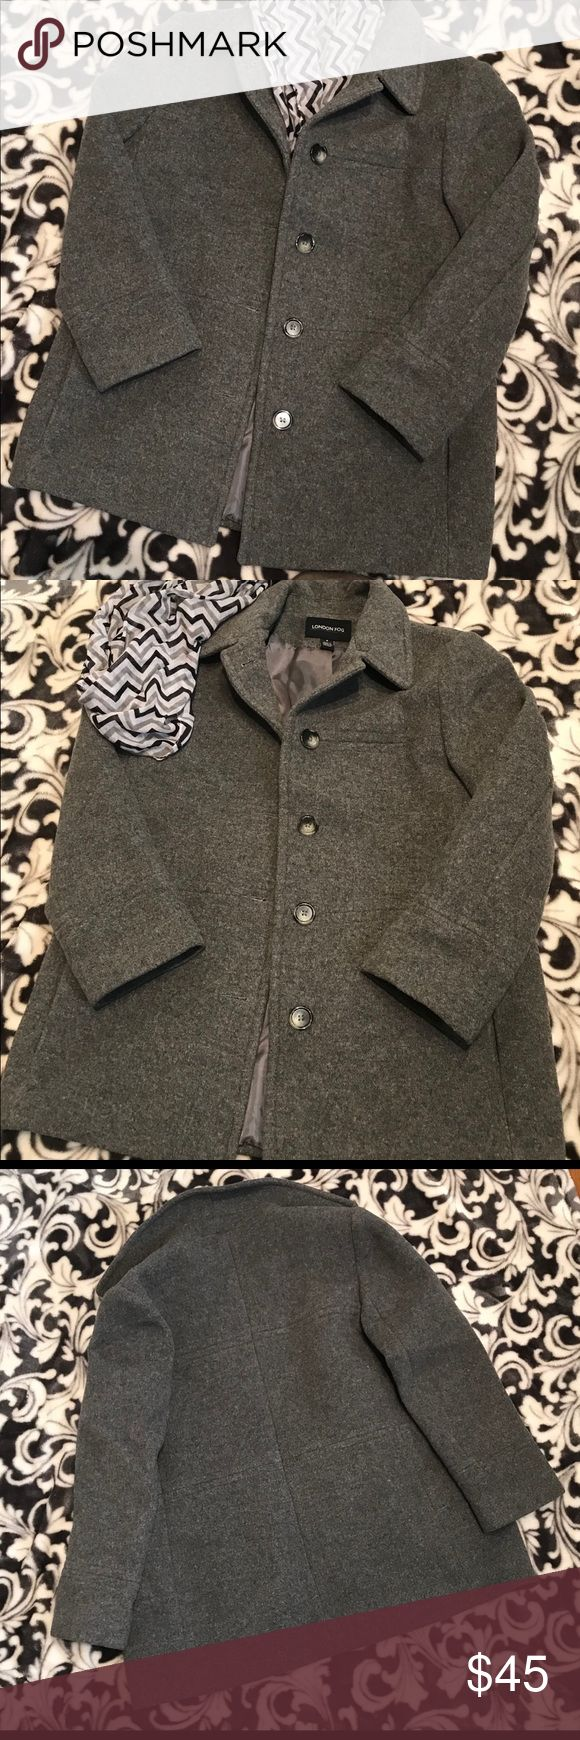 London Fog Wool Pea Coat Gray wool-blended London Fog collar Pea Coat. Two pockets. Size 8 and is 29 1/2 inches long. Like new beautiful heavy coat. London Fog Jackets & Coats Pea Coats